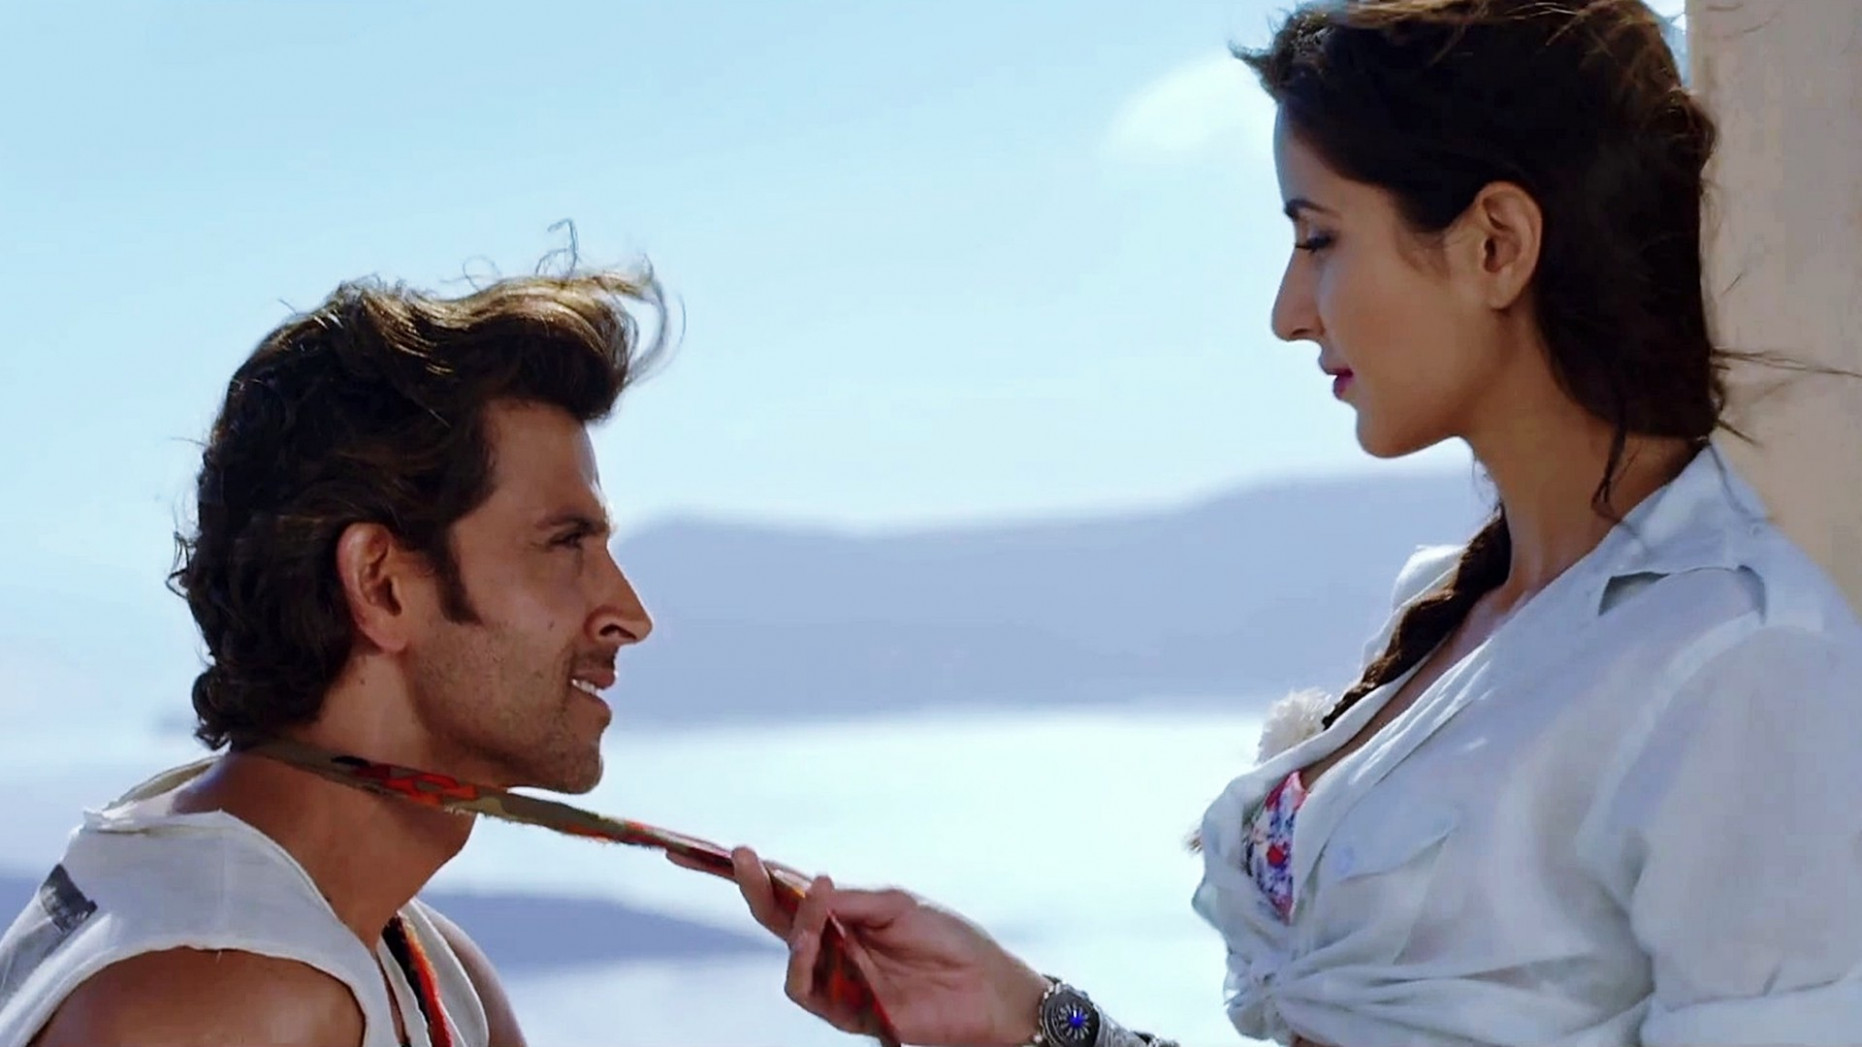 Bollywood couple romance and love photos | HD Wallpapers Rocks